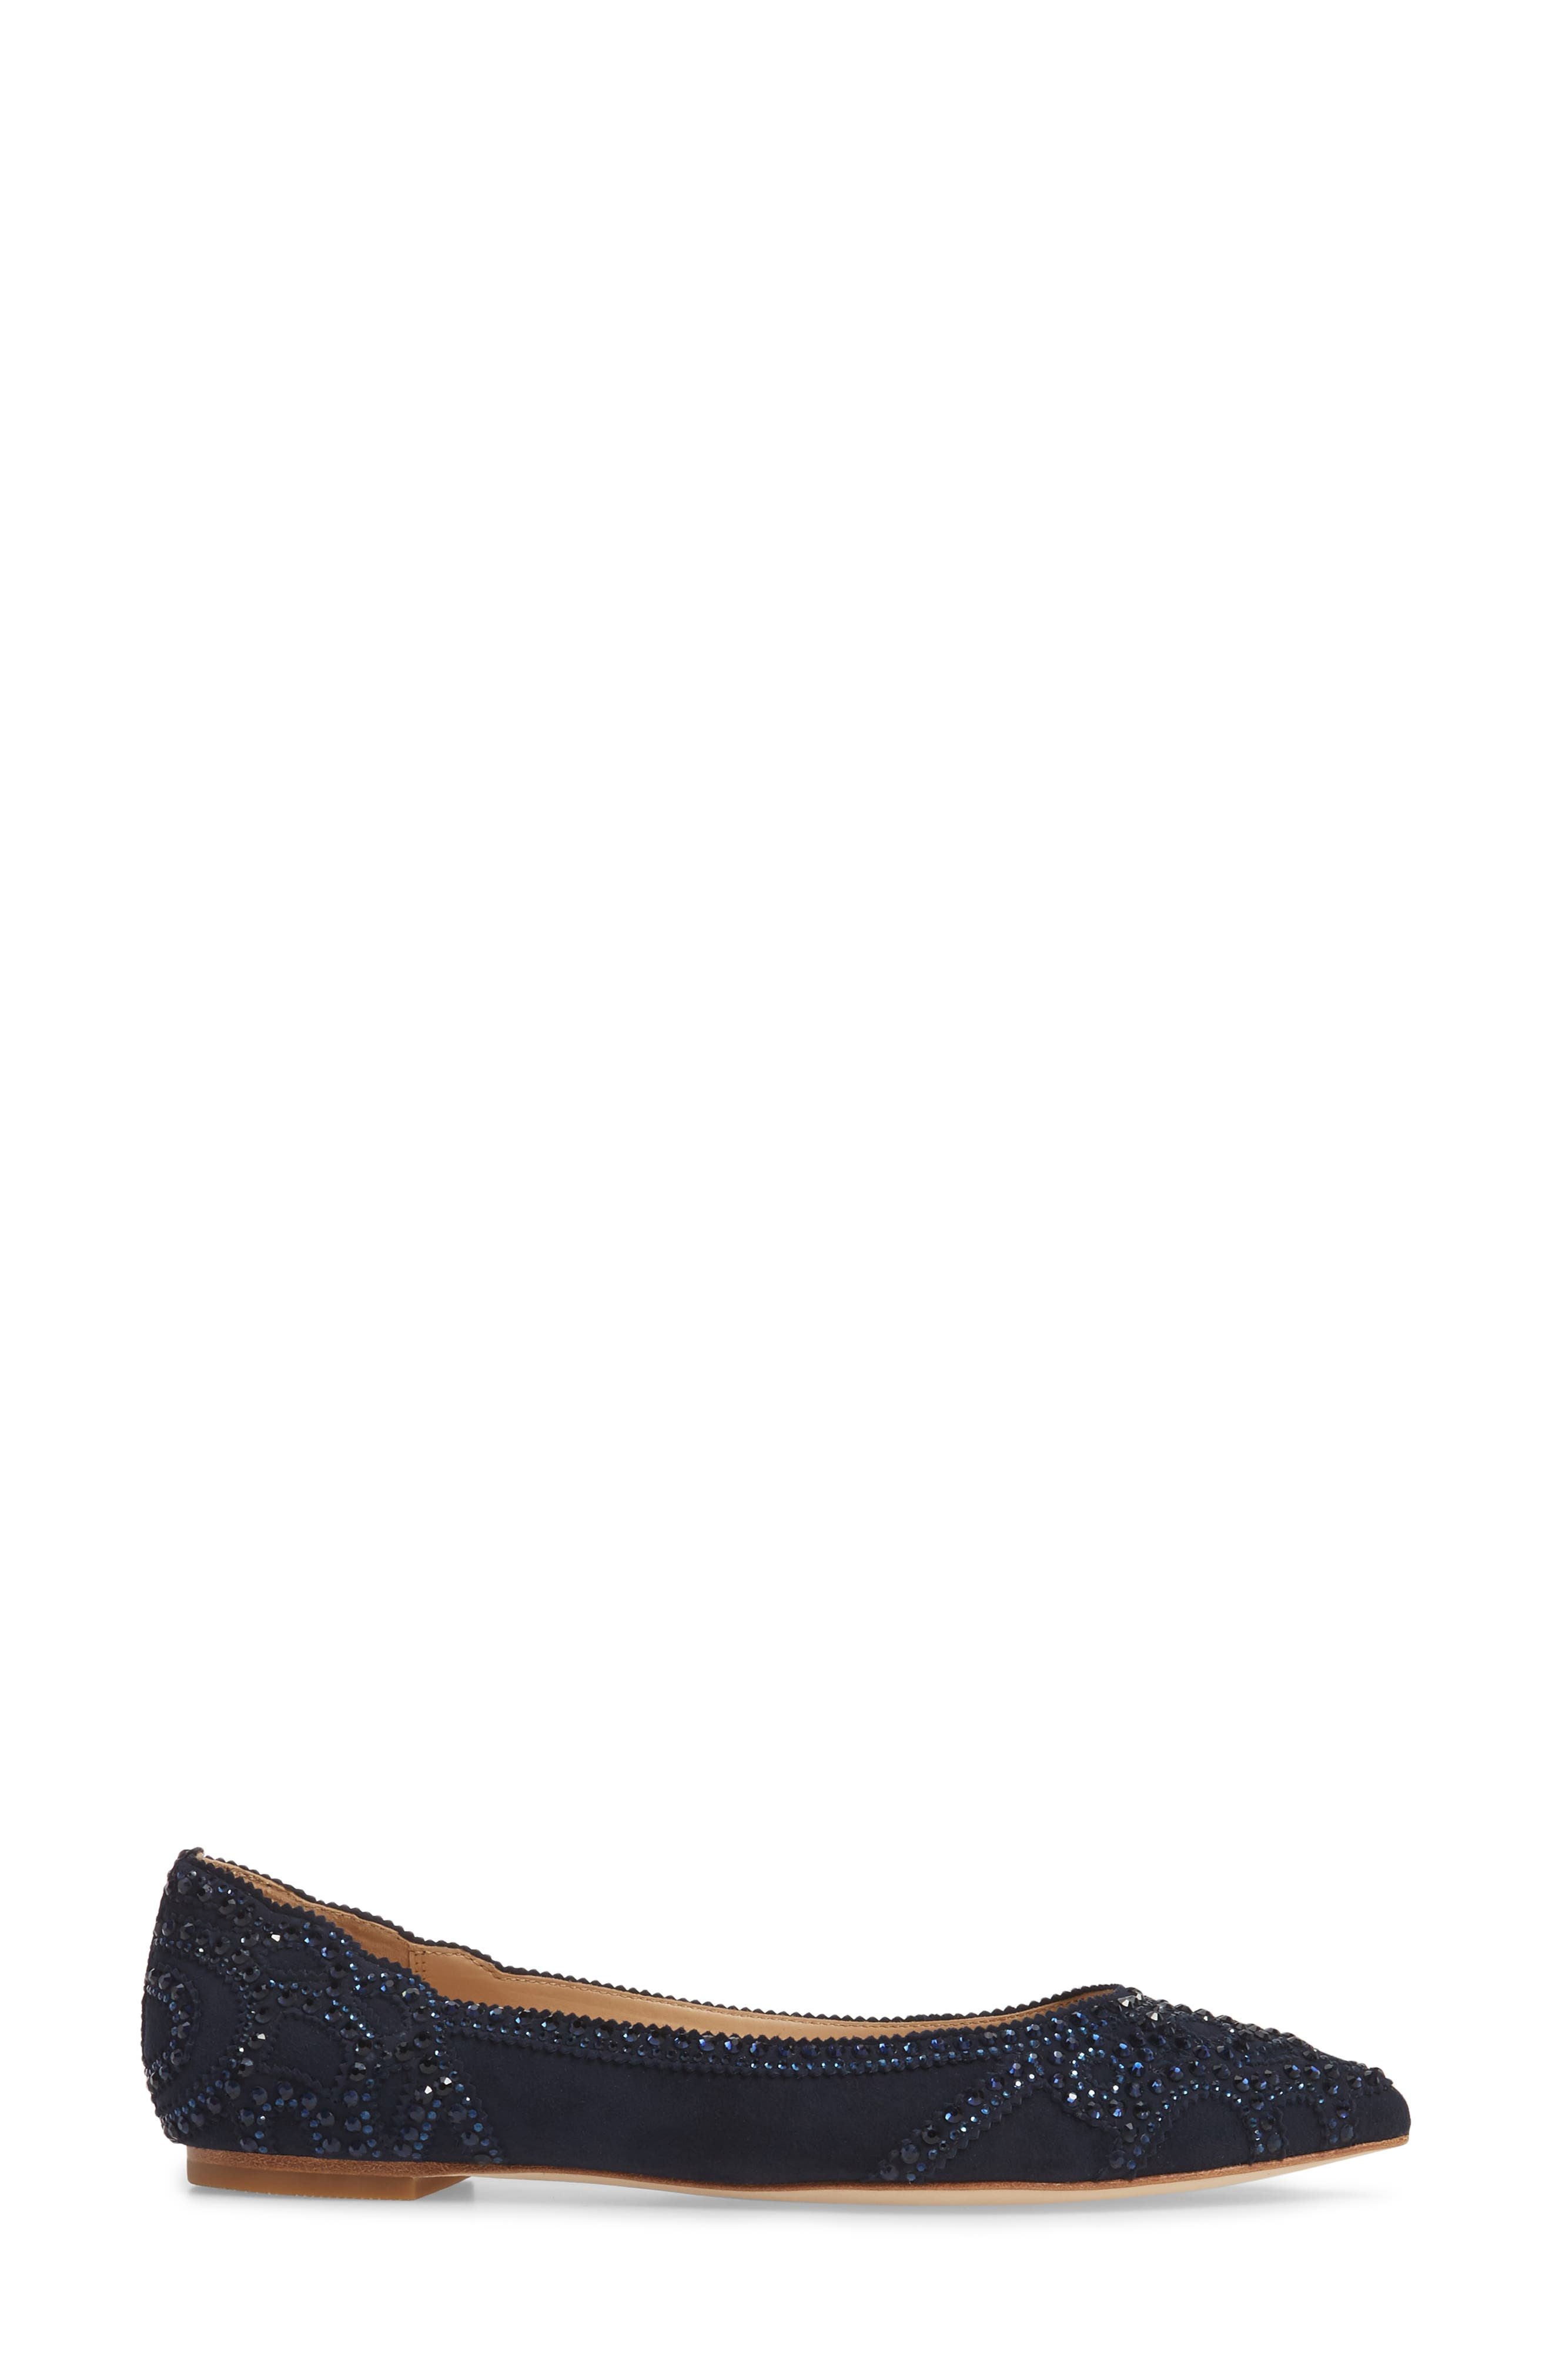 Gigi Crystal Pointy Toe Flat,                             Alternate thumbnail 3, color,                             Midnight Suede